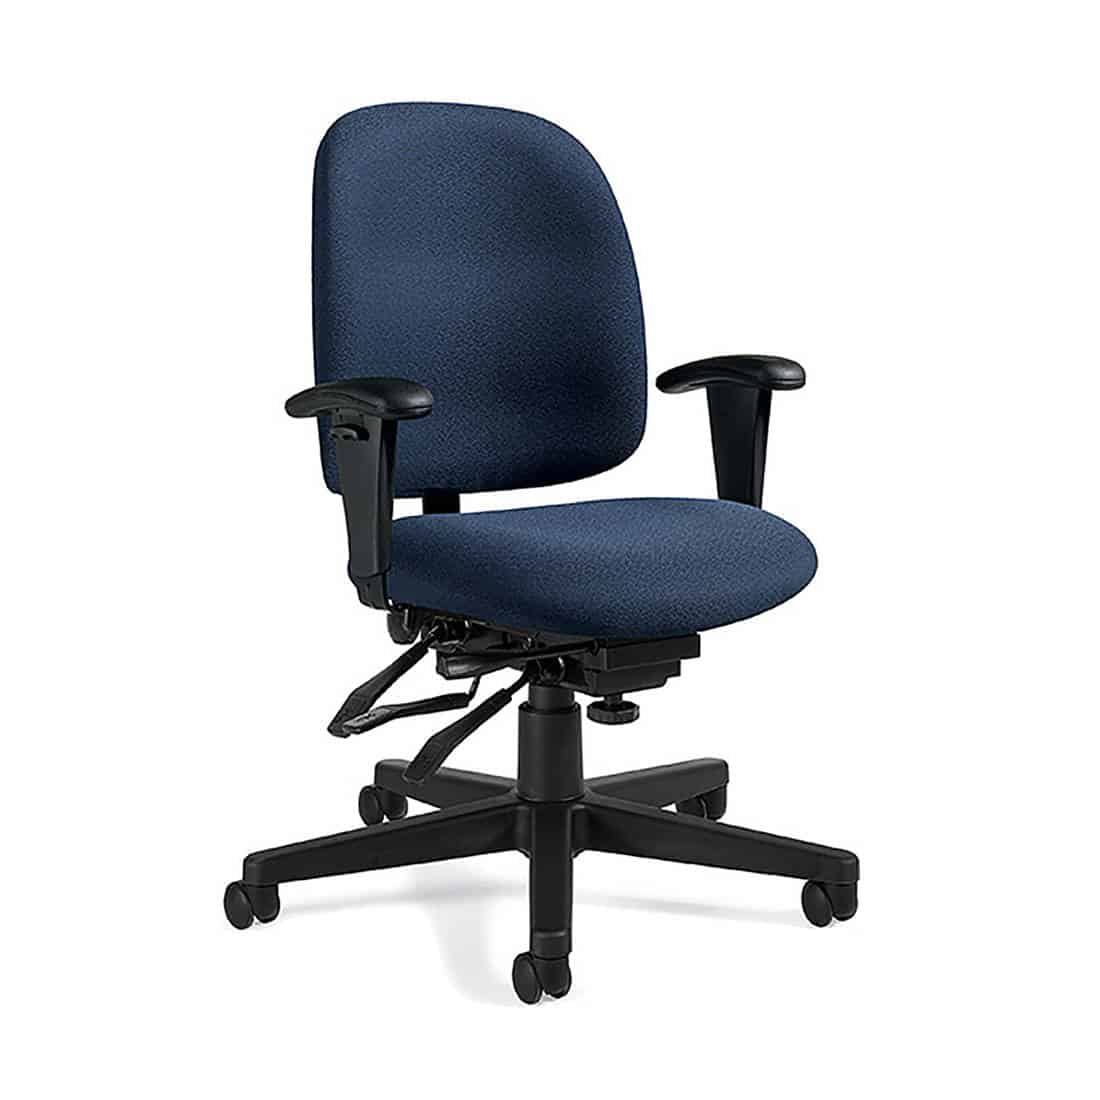 Global Granada Low Back Multi-Tilter Chair CAL-133 certified